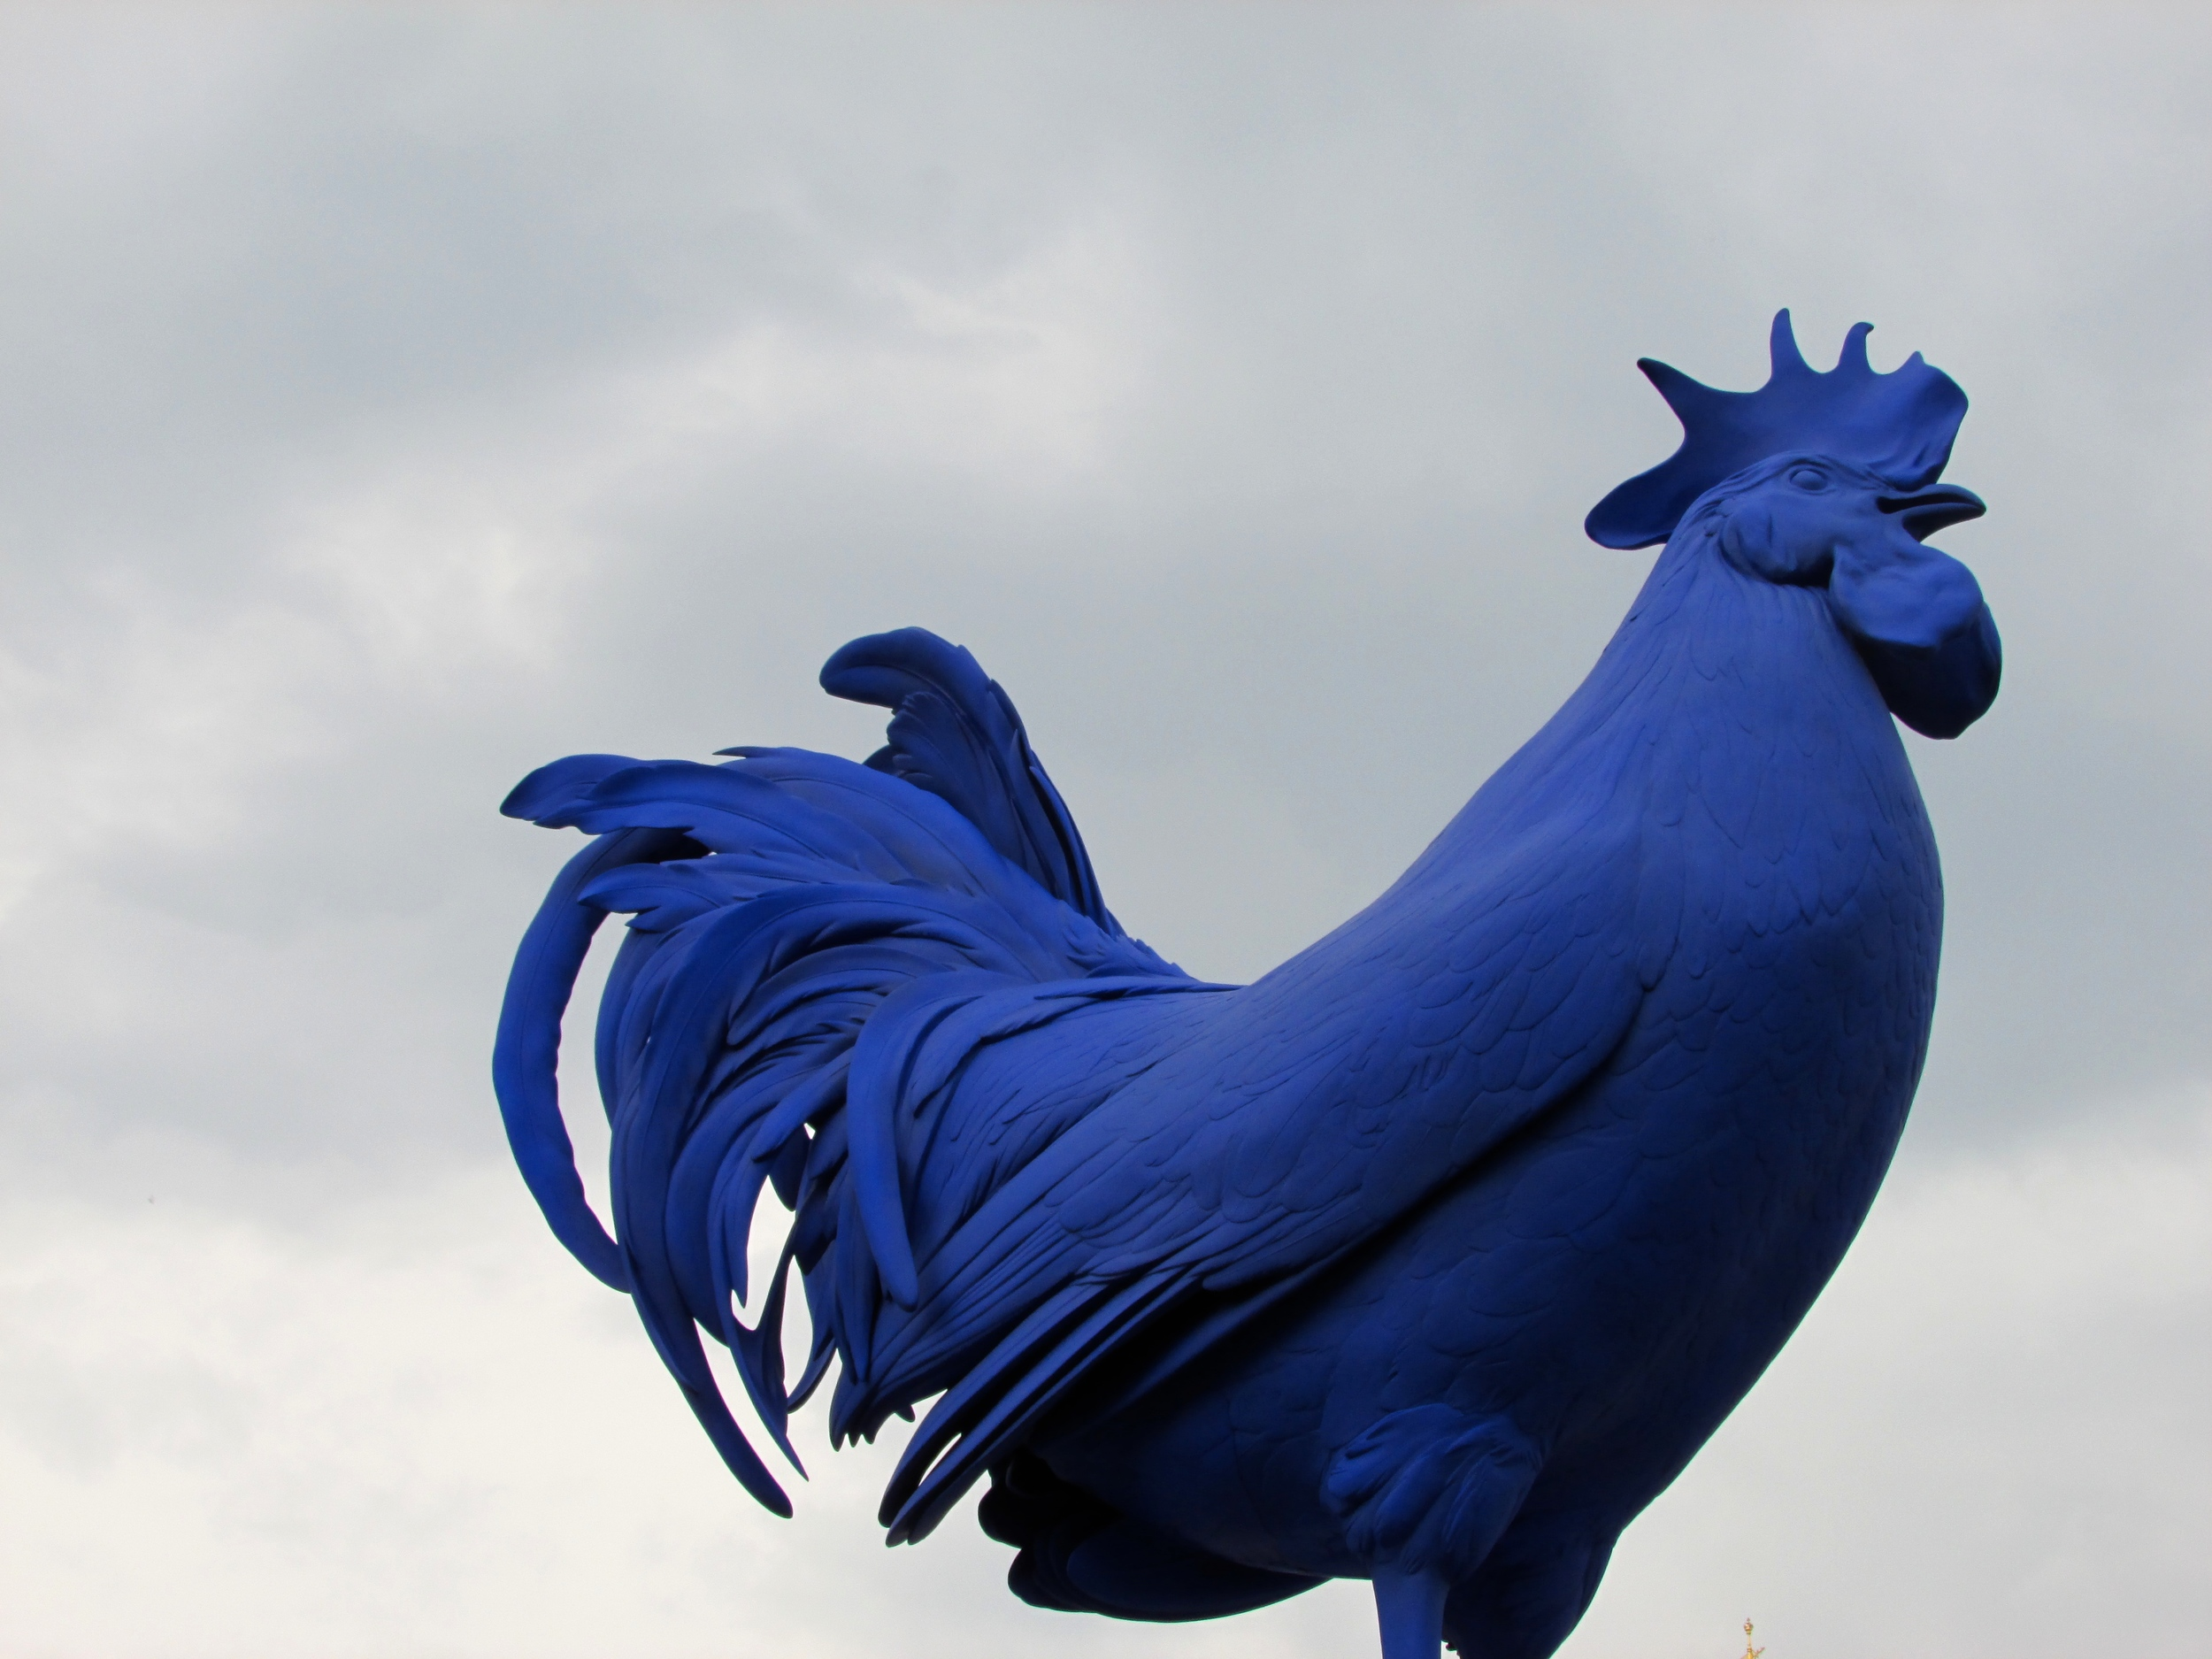 A huge blue... rooster in Trafalger Square, London